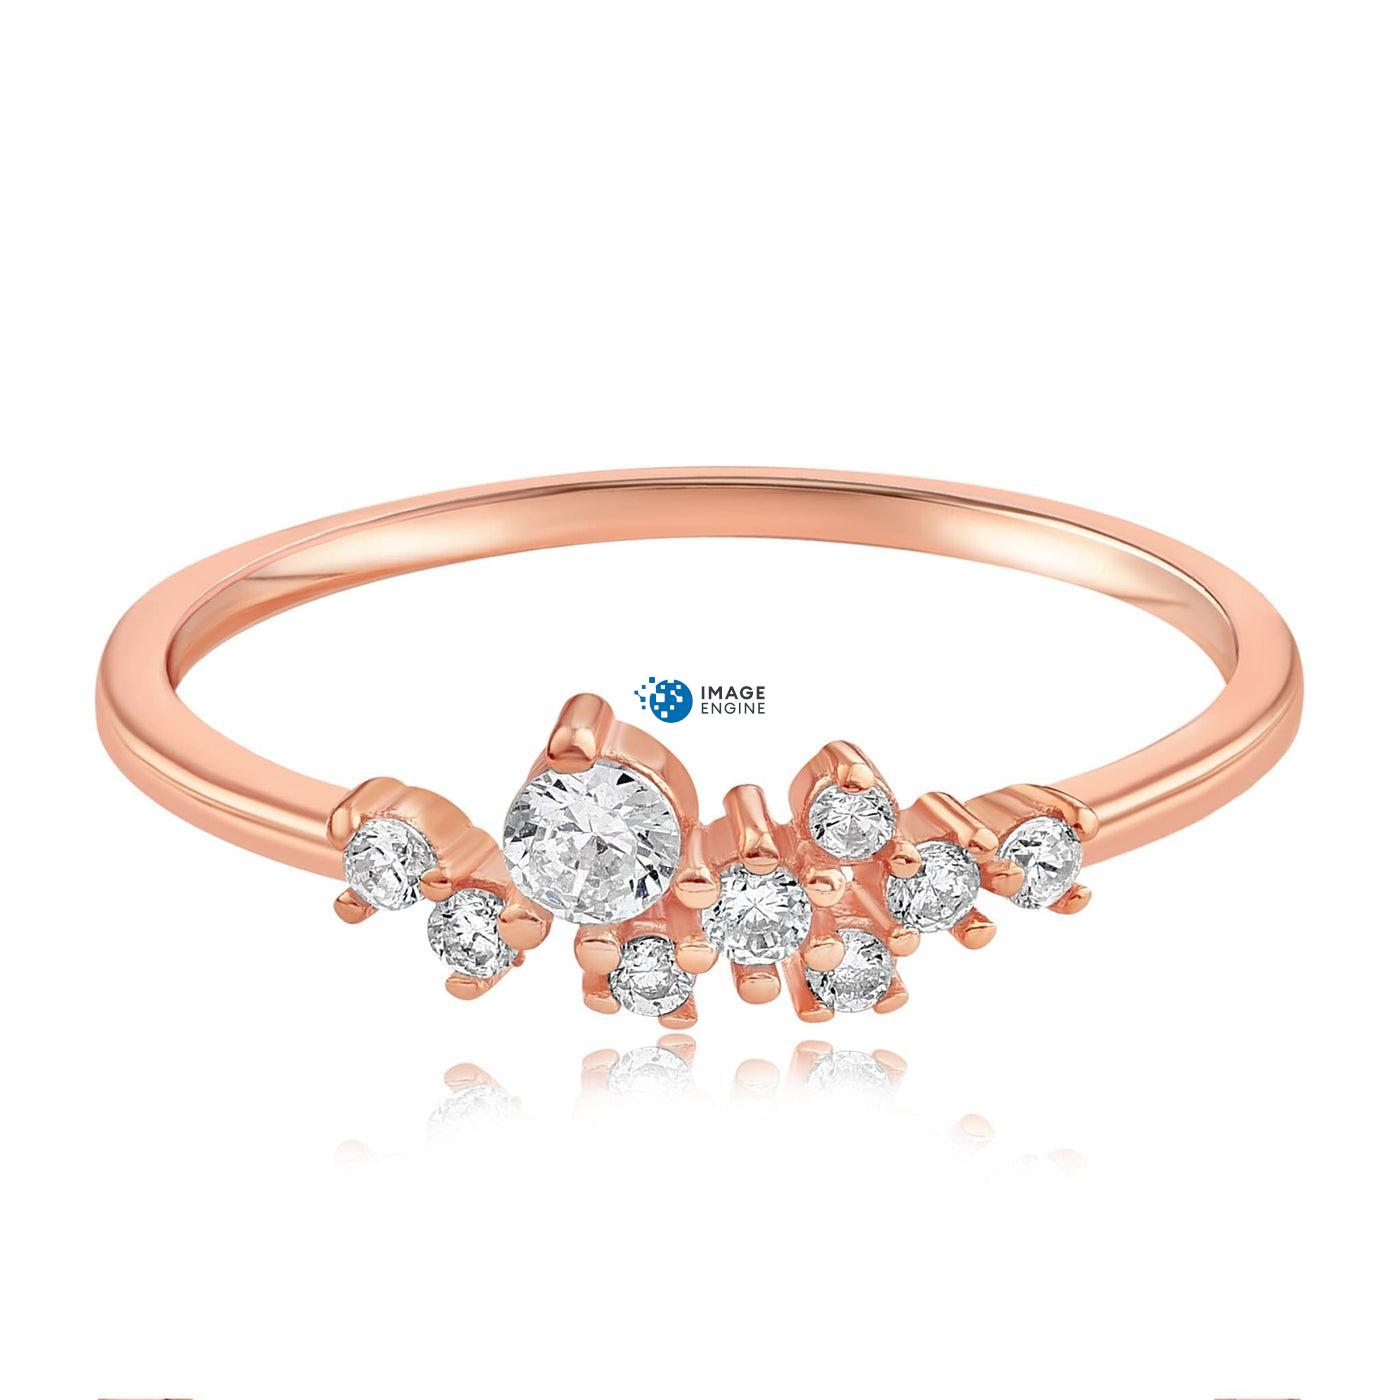 Sasha Sparkle Ring - Front View Facing Down - 18K Rose Gold Vermeil